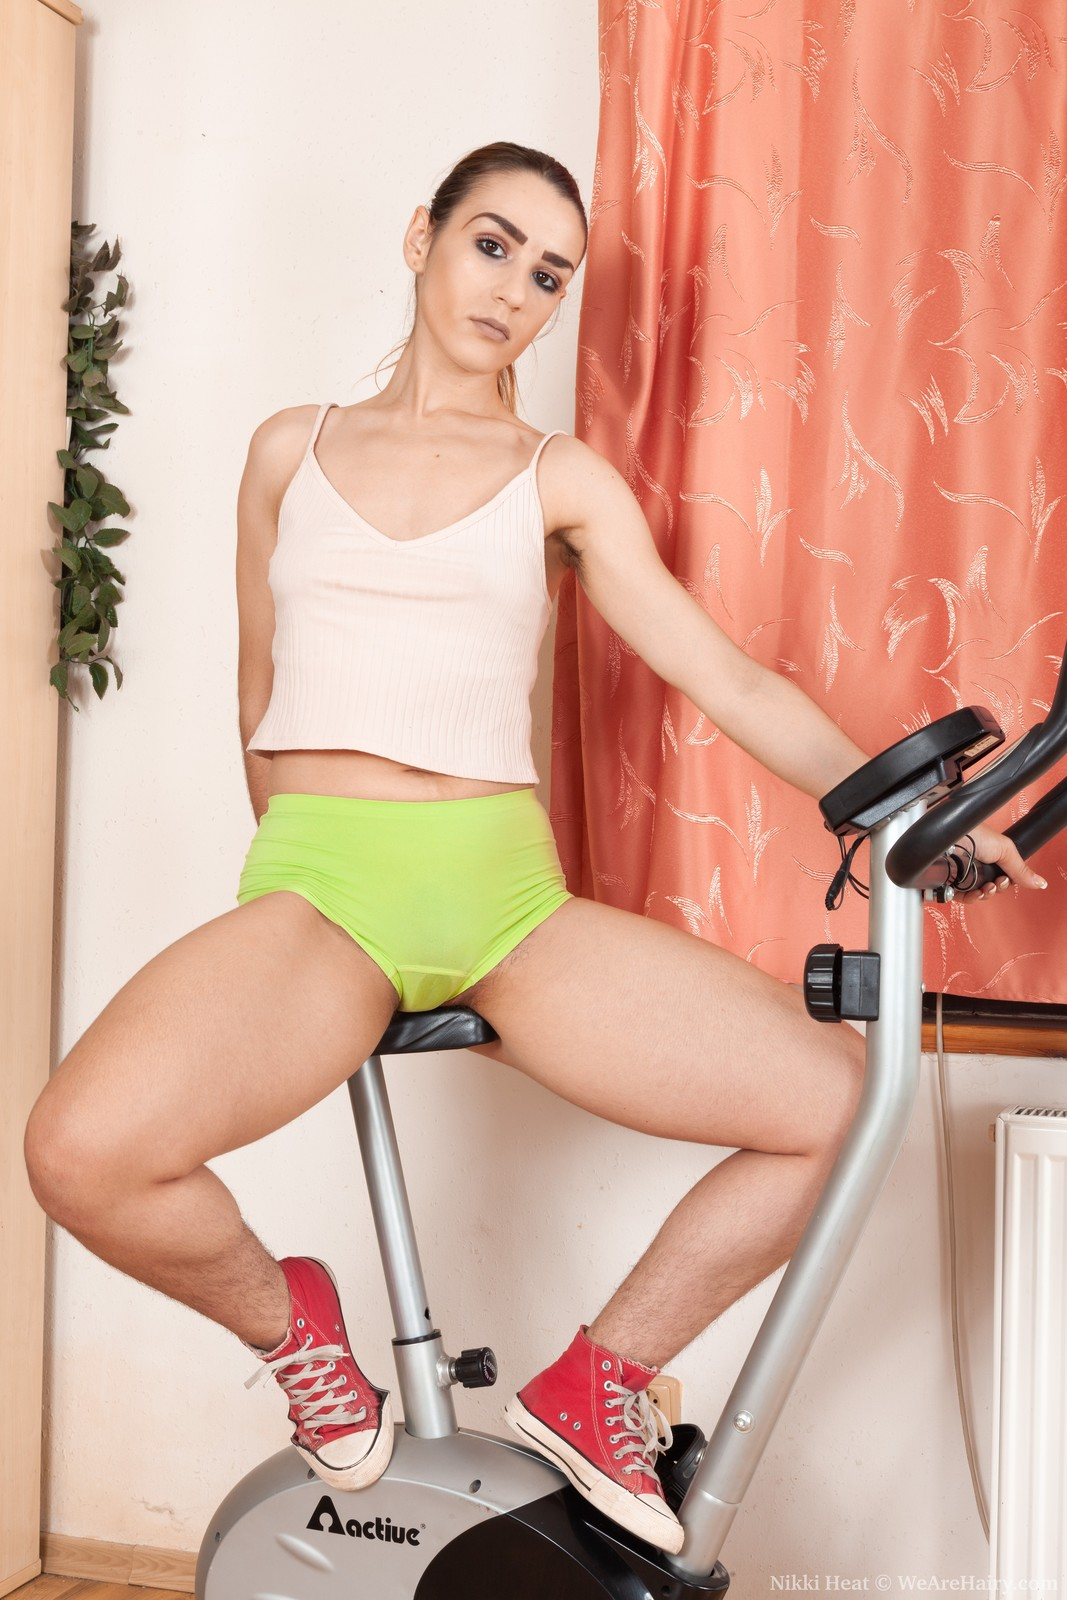 Nikki Heat enjoys sexy spinning today on her bike